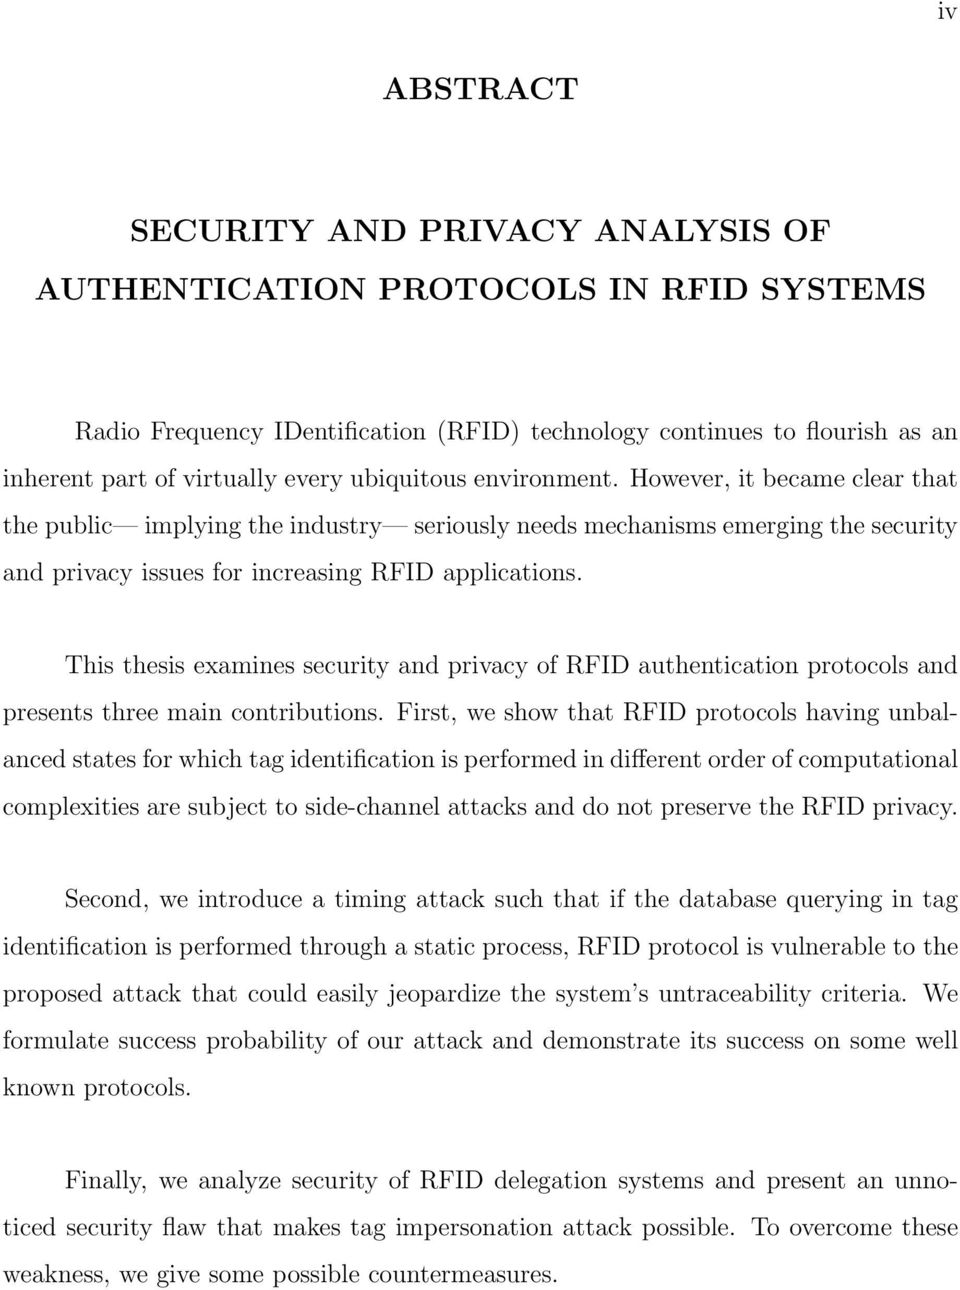 This thesis examines security and privacy of RFID authentication protocols and presents three main contributions.